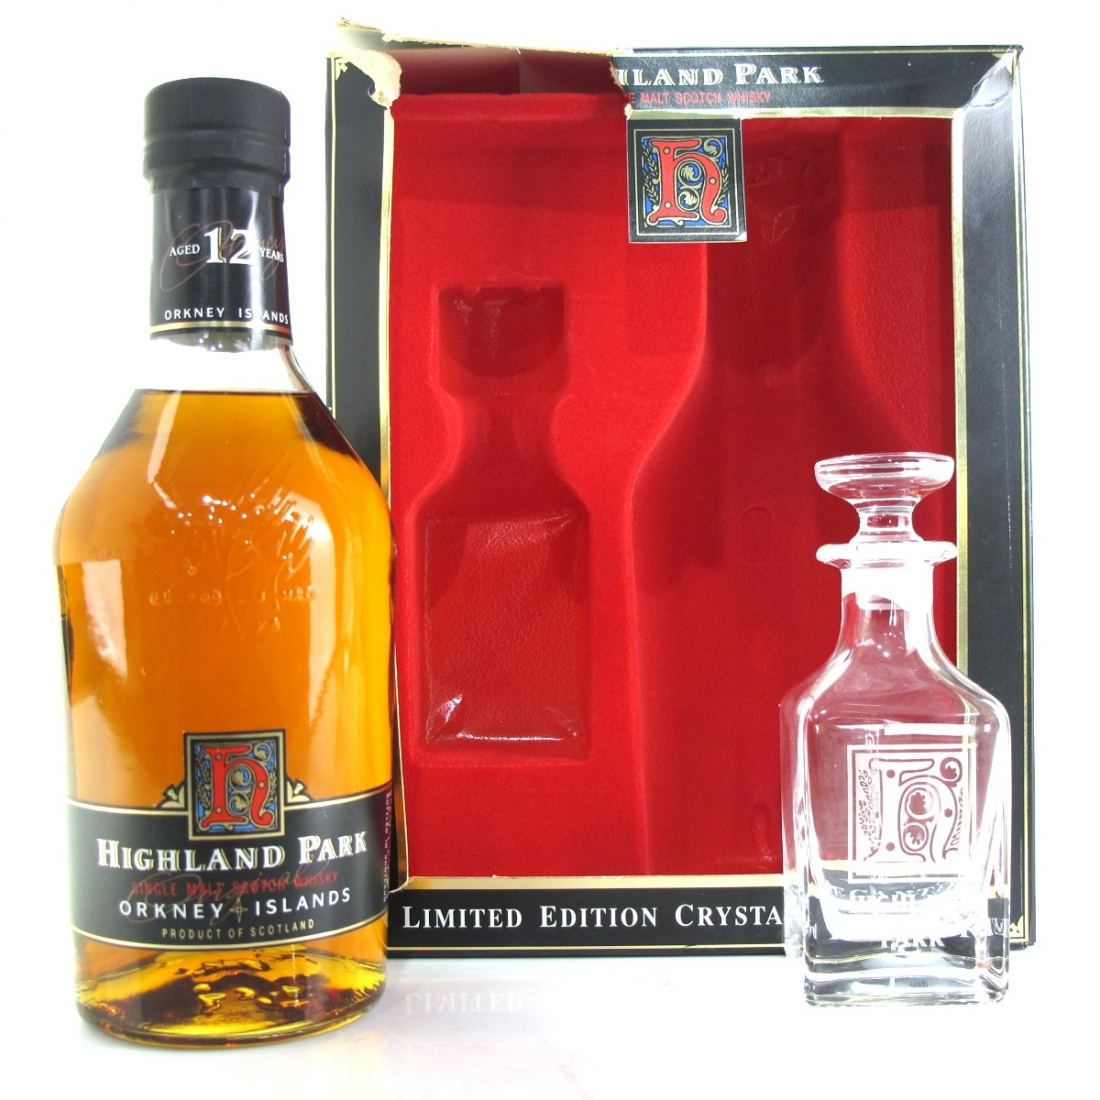 Highland Park 12 Year Old and Decanter Gift Set